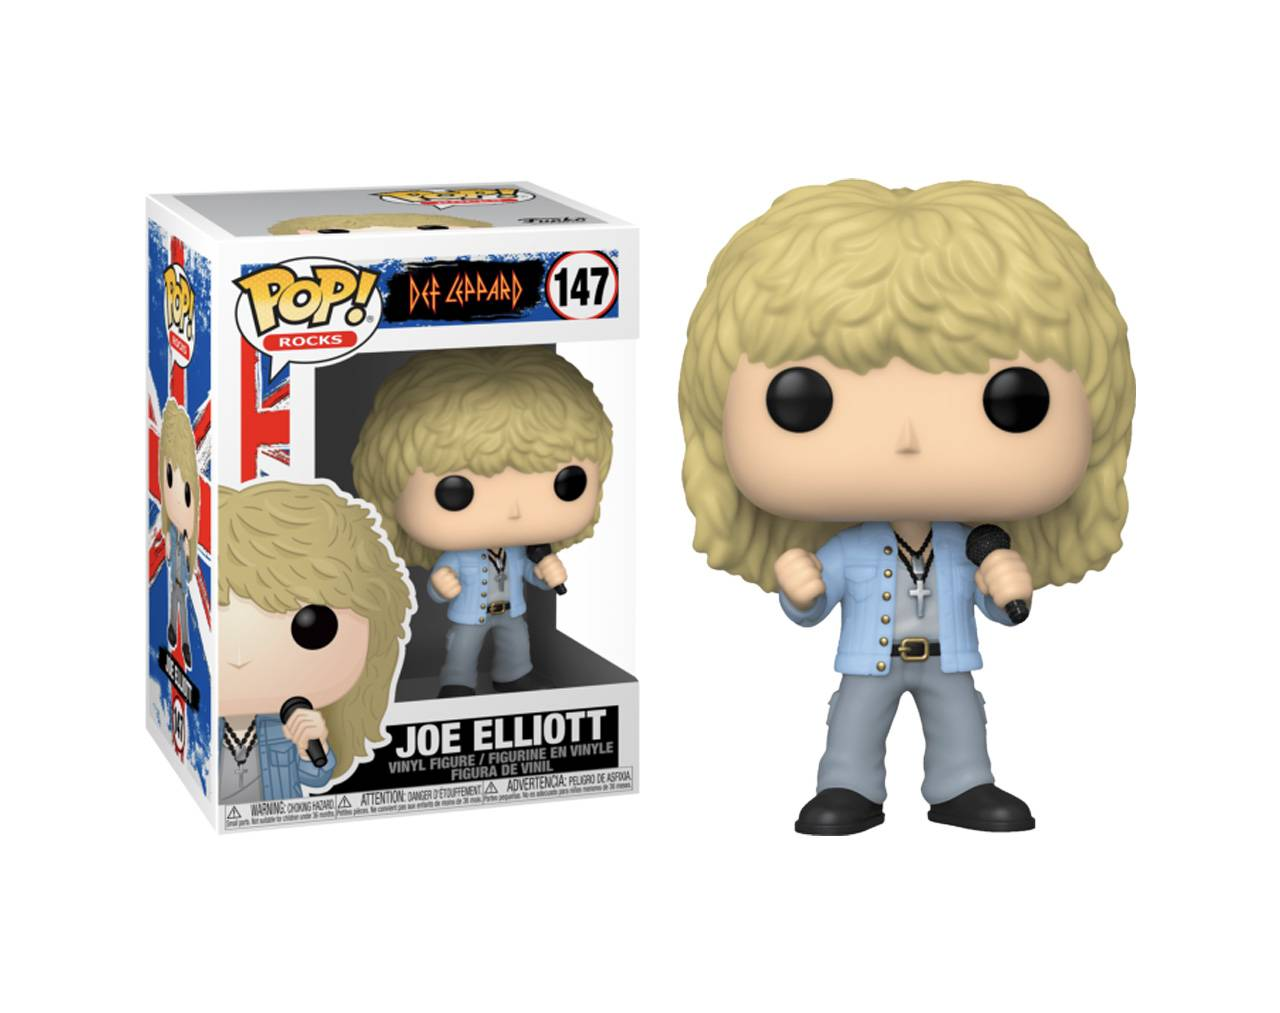 Joe Elliott Pop! Vinyl